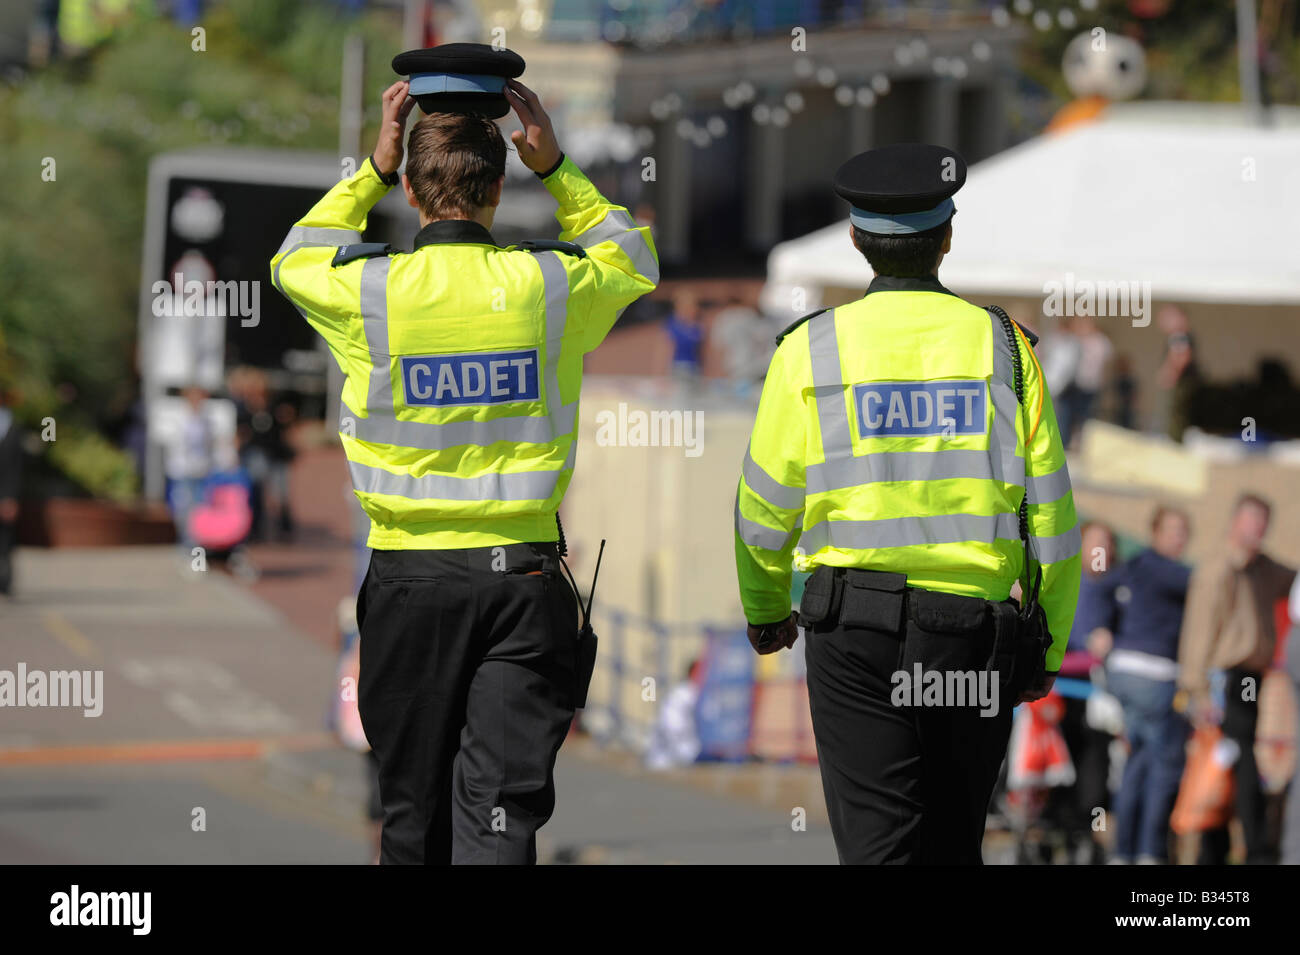 A young Police cadet lifts his hat for some relief while on patrol at a public event in Eastbourne in the sunshine. - Stock Image